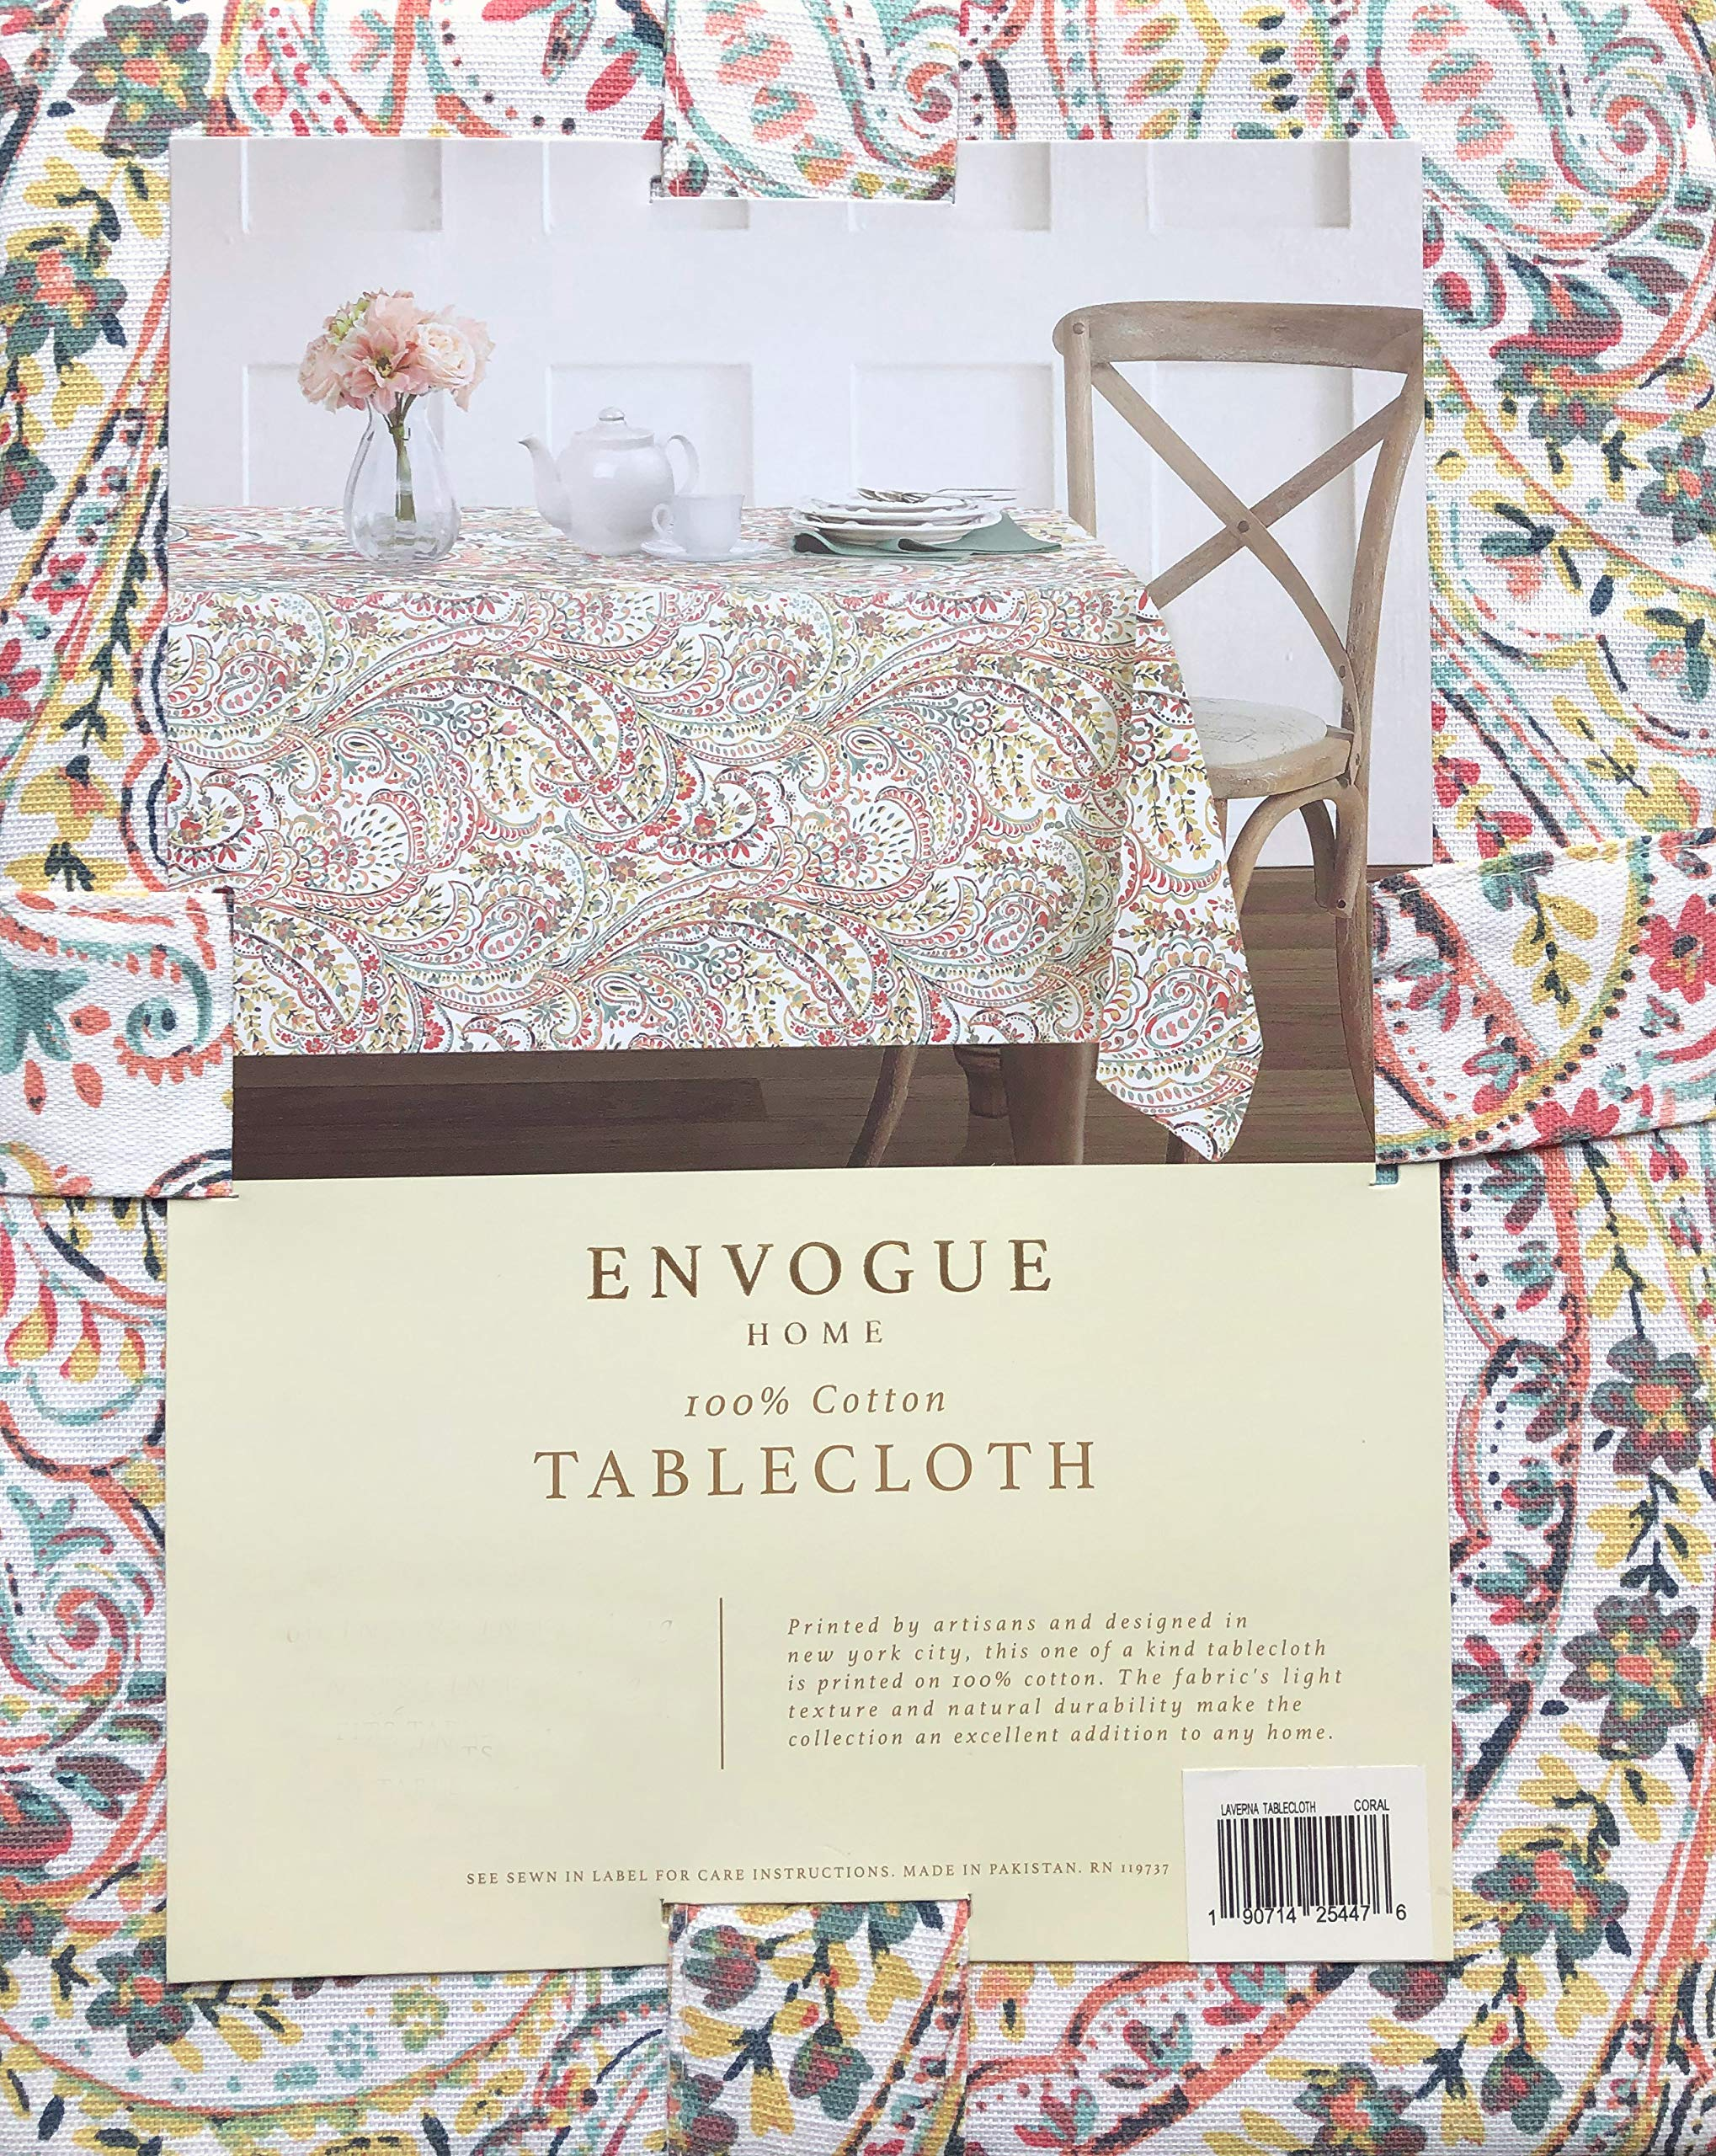 Cynthia Rowley Jacobean Floral Paisley Pattern Tablecloth Blue Orange Red Green on White 60 x 104 Water Resistant Easy Care Seat 8-10